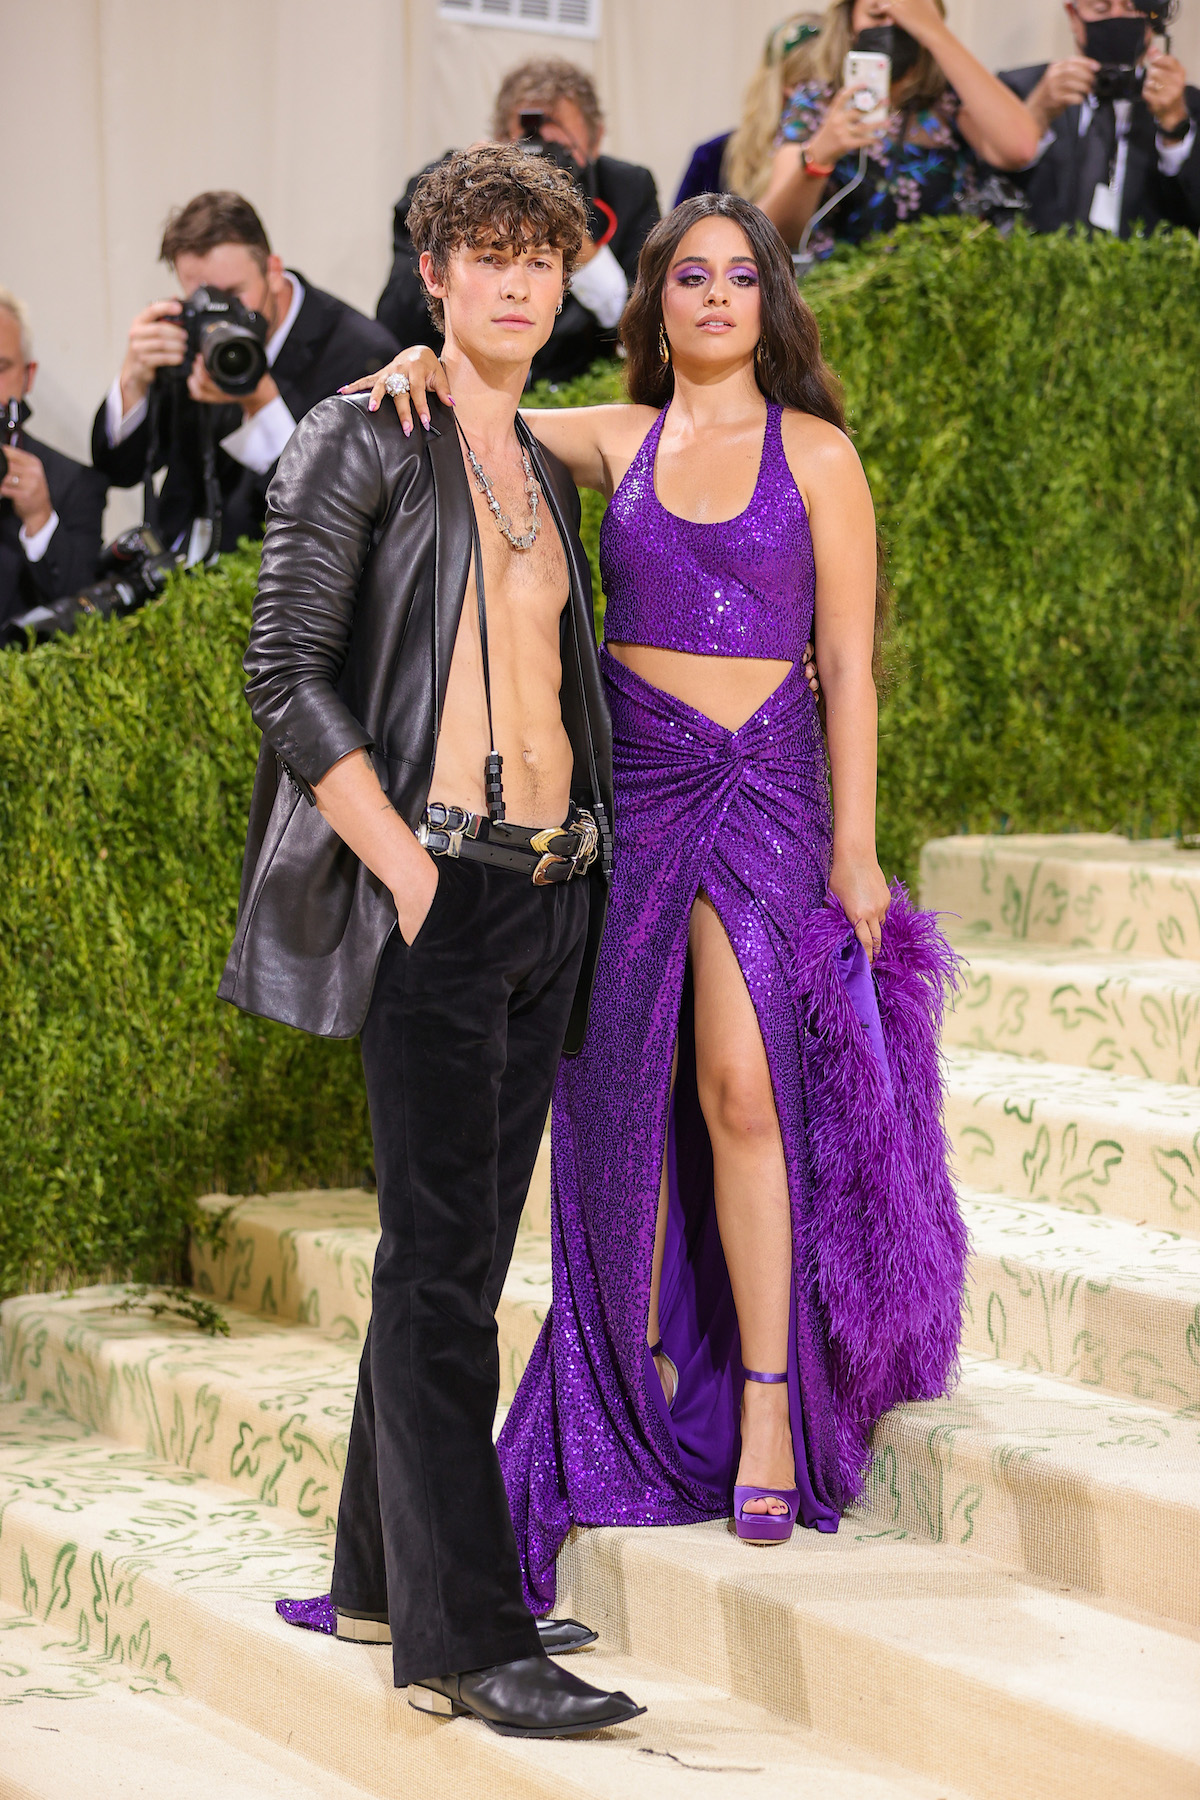 Shawn Mendes and Camila Cabello pose together at the 2021 Met Gala.